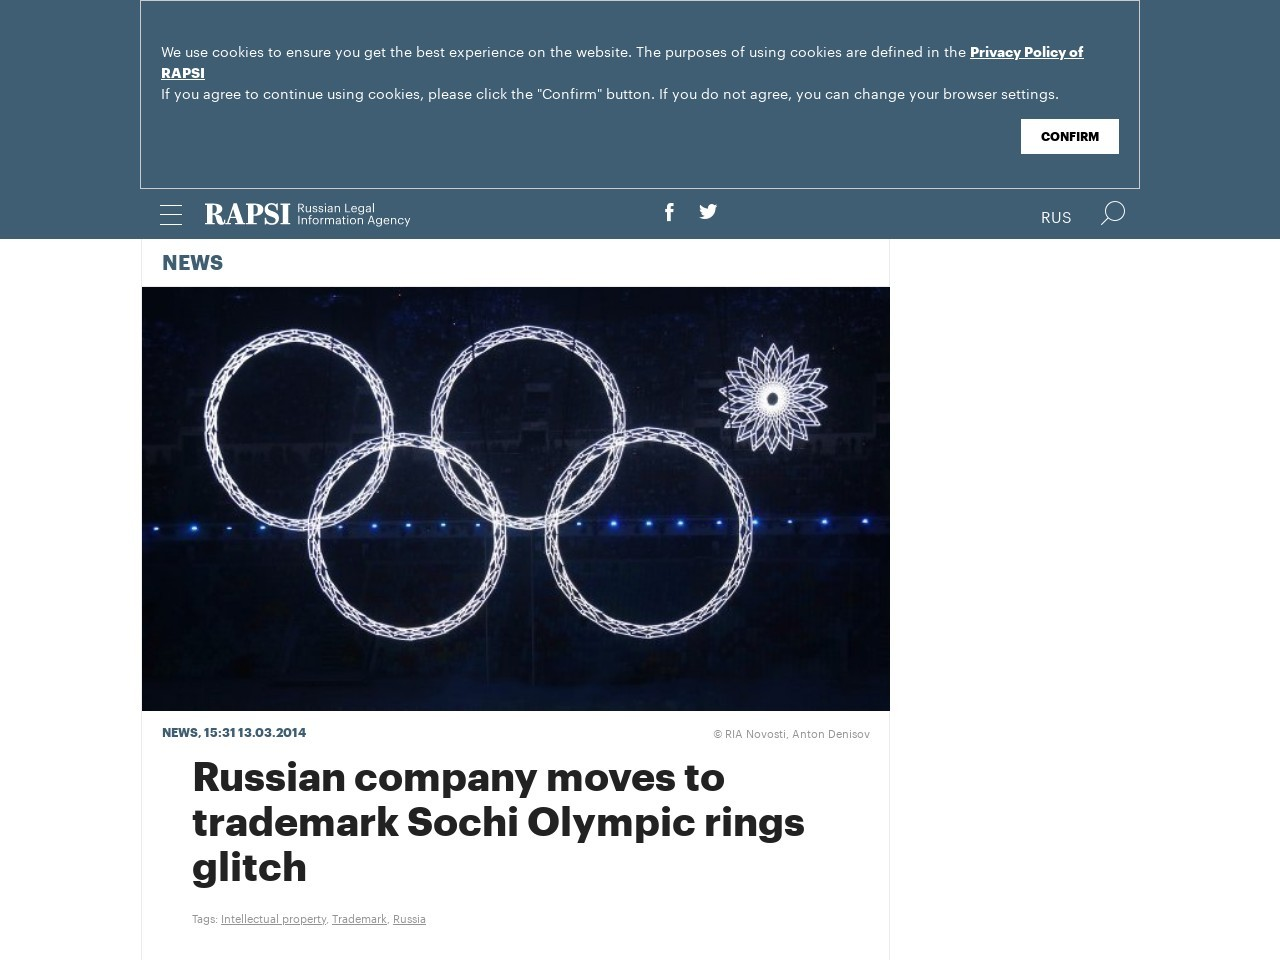 Russian company moves to trademark Sochi Olympic rings glitch